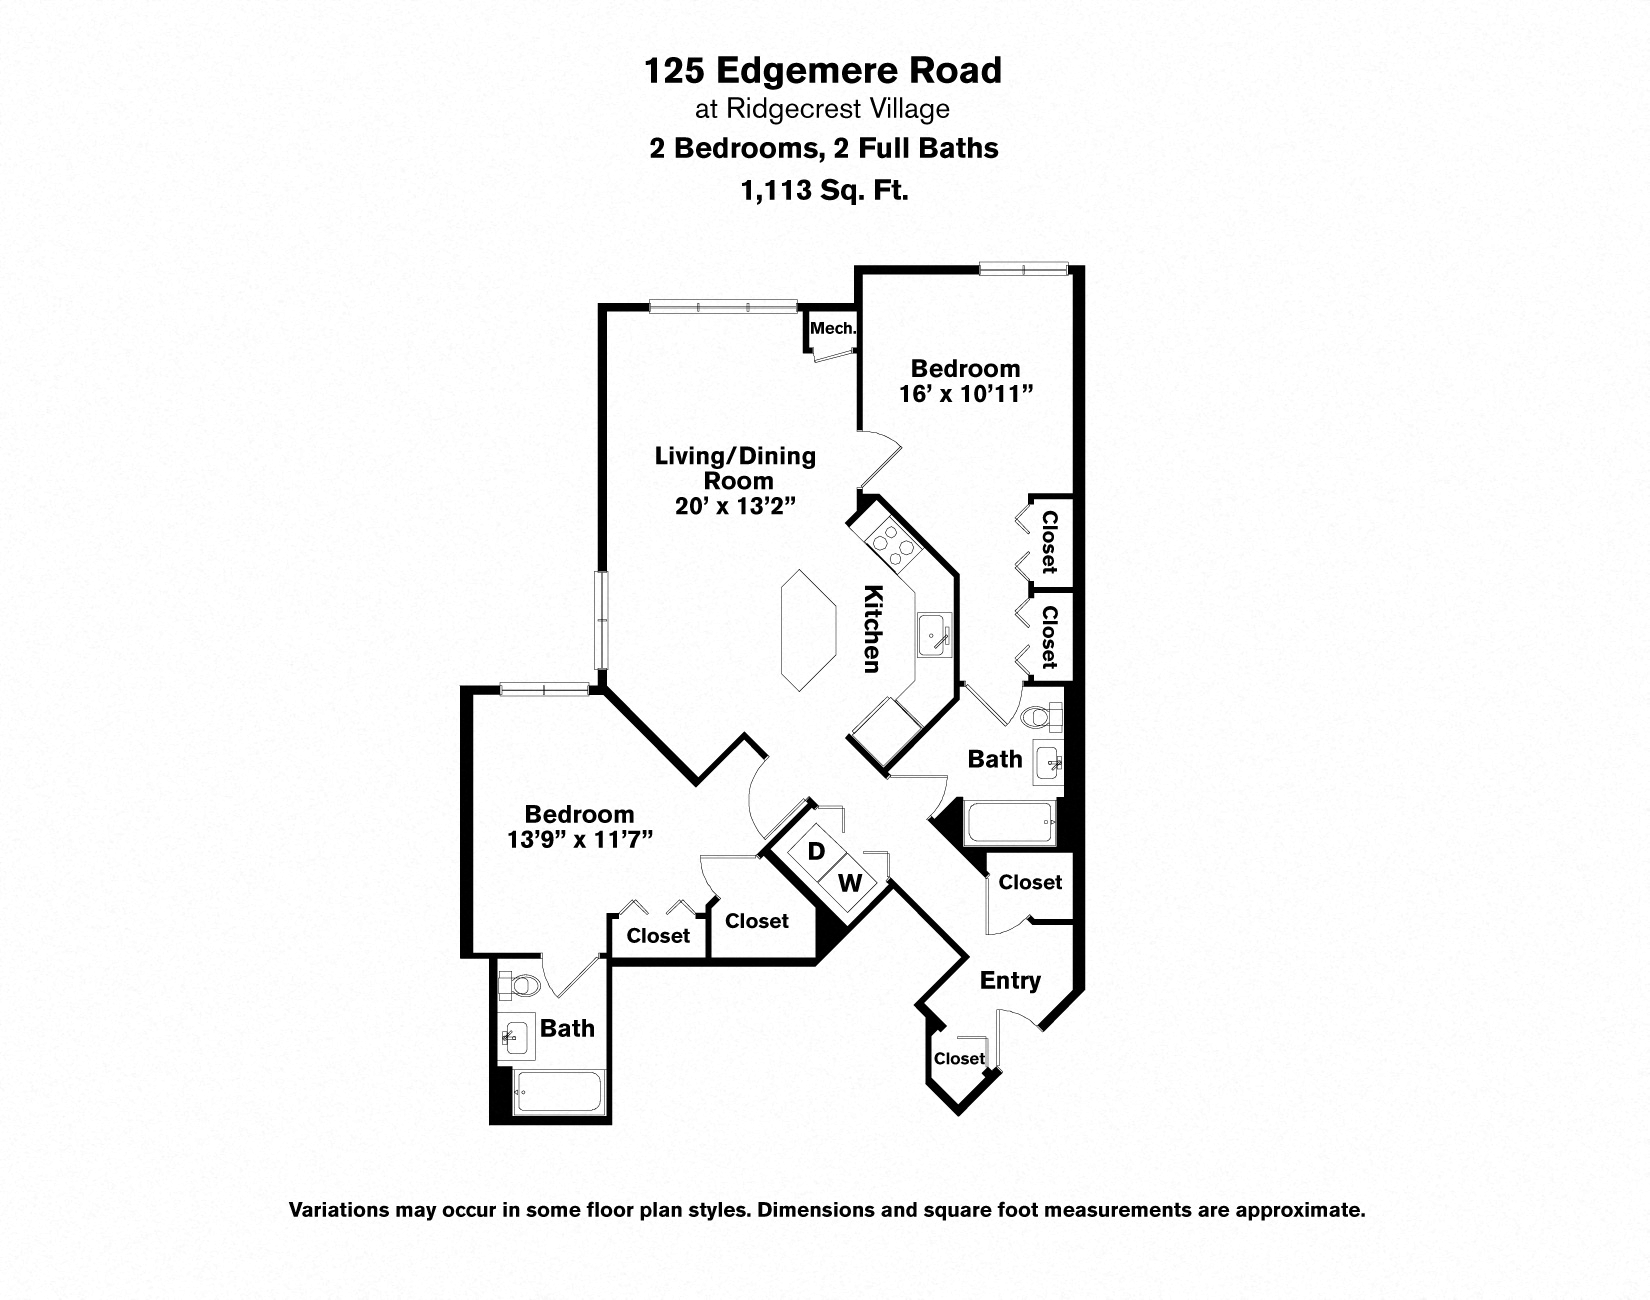 Click to view Floor plan 2 BR - Edgemere image 3